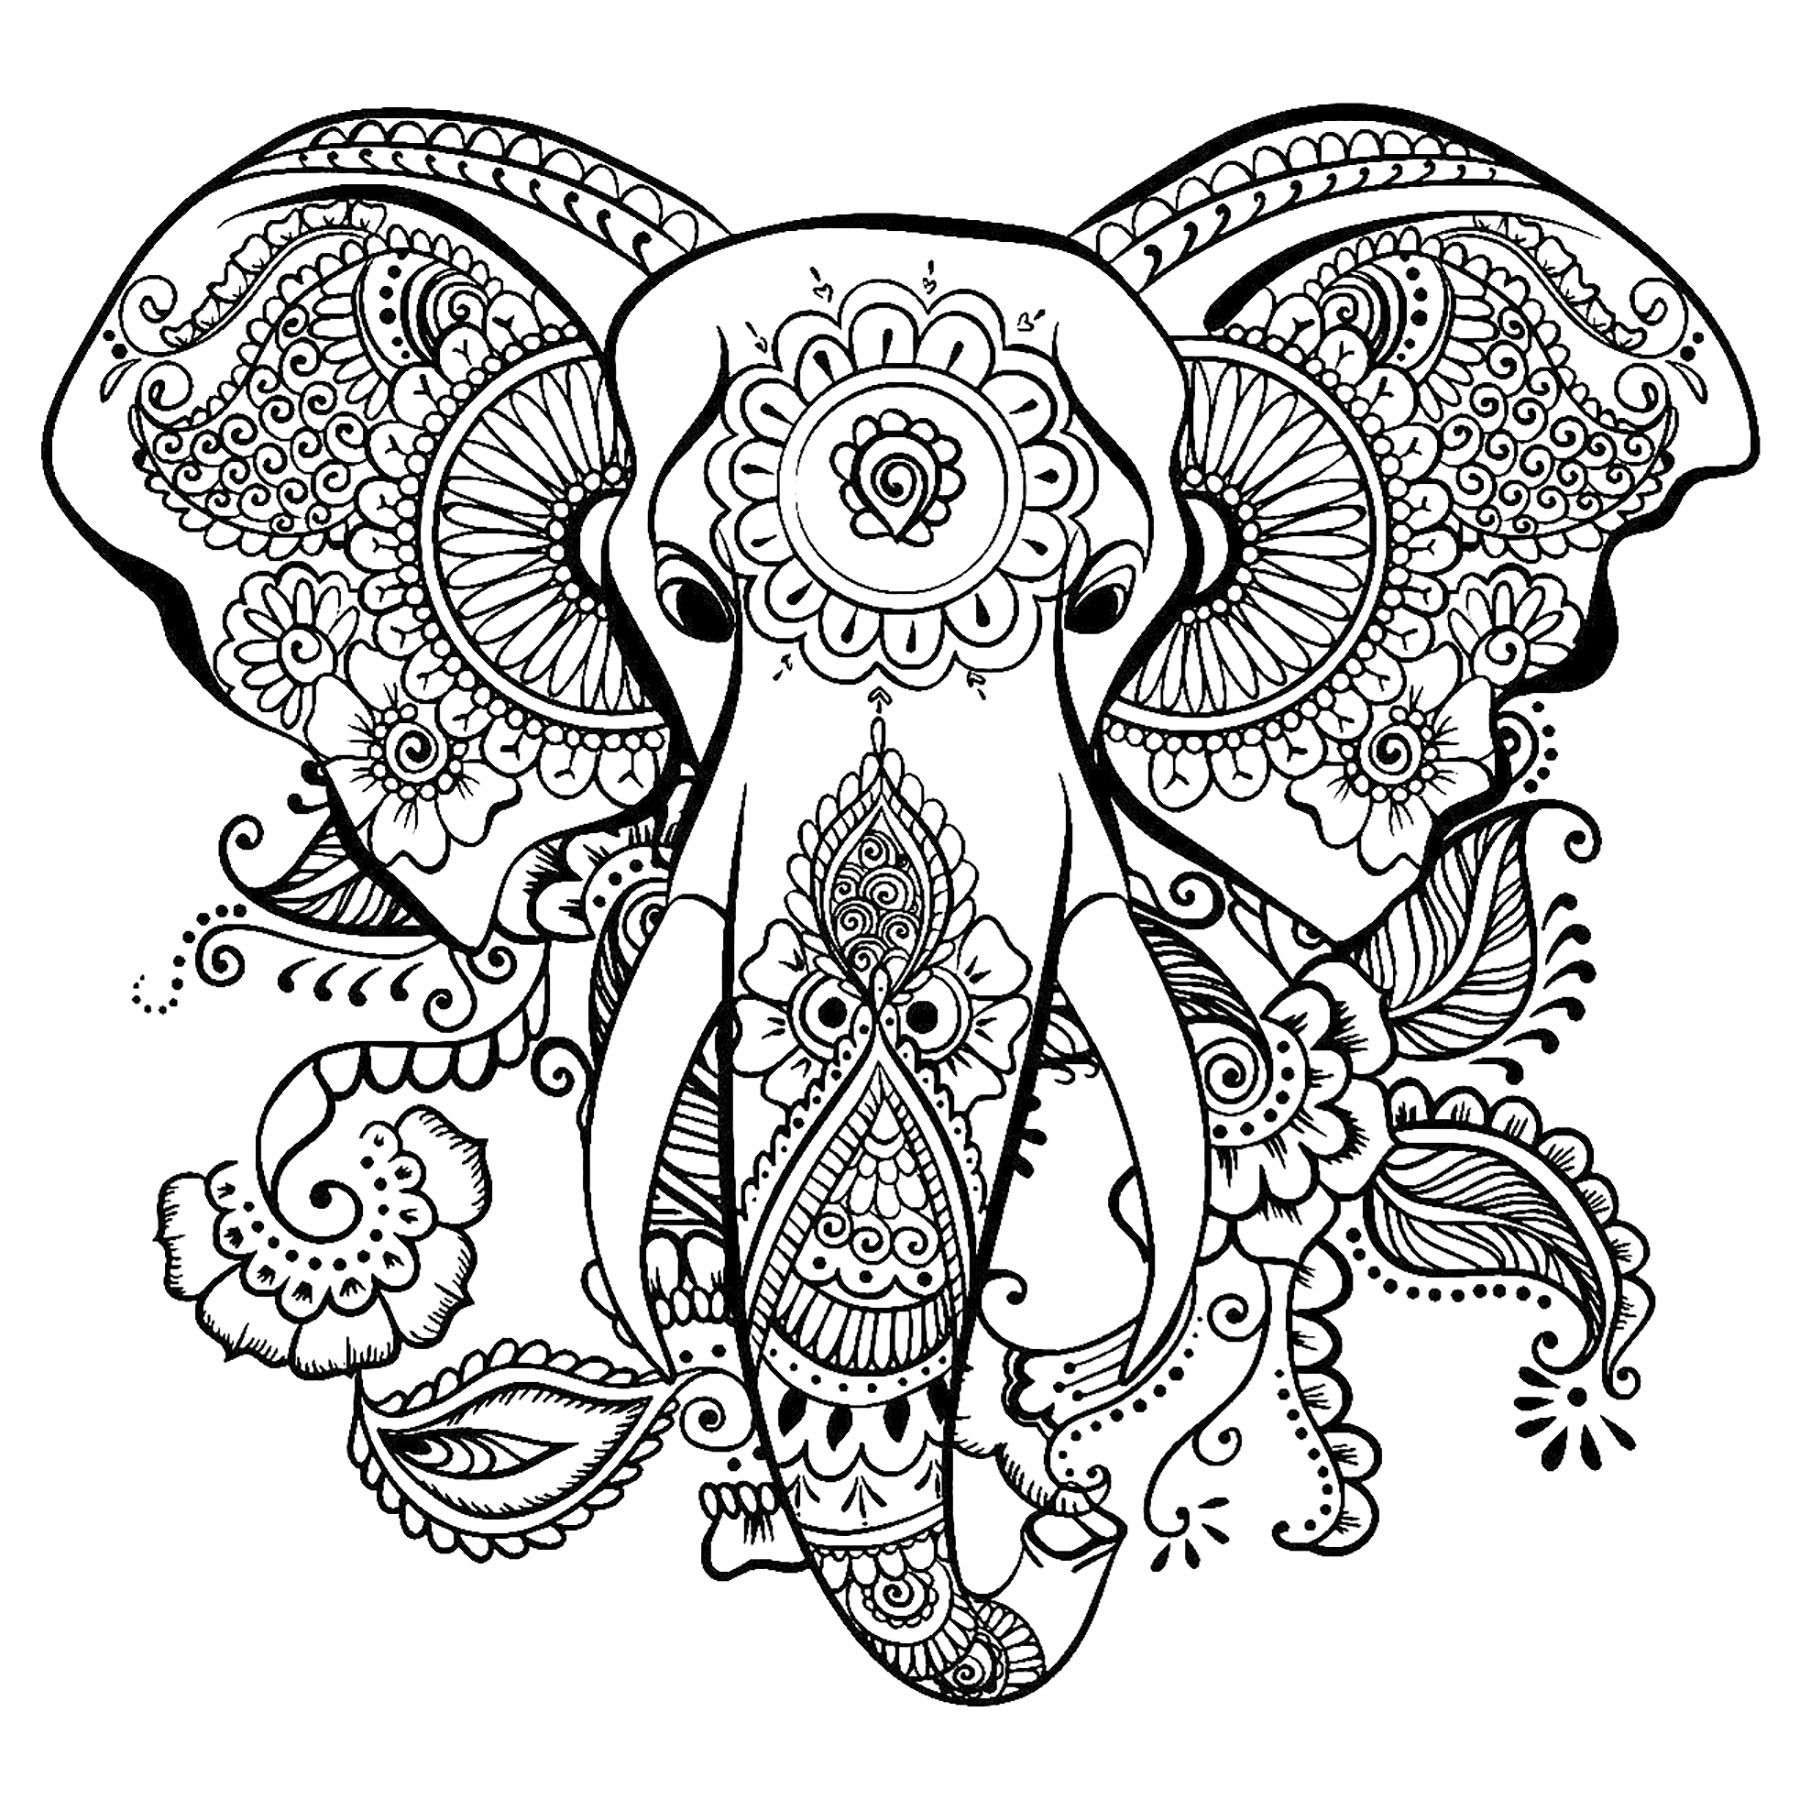 Elegant Drawing Of An Elephant Elephant Head To Color With Beautiful Patterns From The Elephant Coloring Page Mandala Coloring Pages Animal Coloring Pages